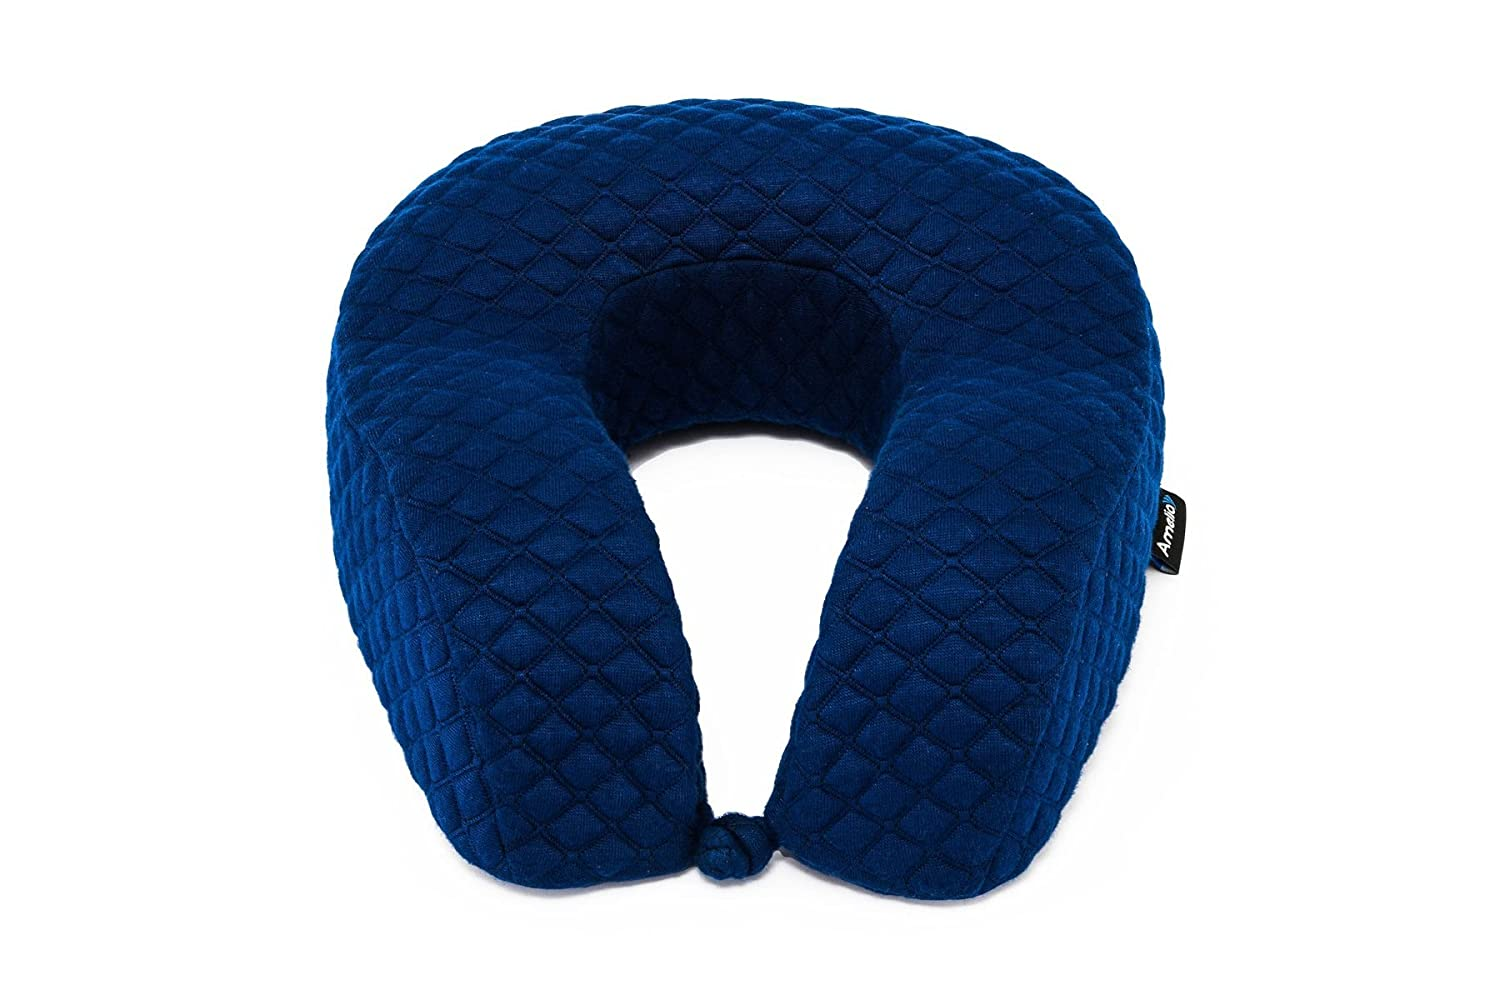 Luxury travel neck pillow memory foam head support best cushion with high sides easy removable and washable cover extremely soft and comfy dark blue